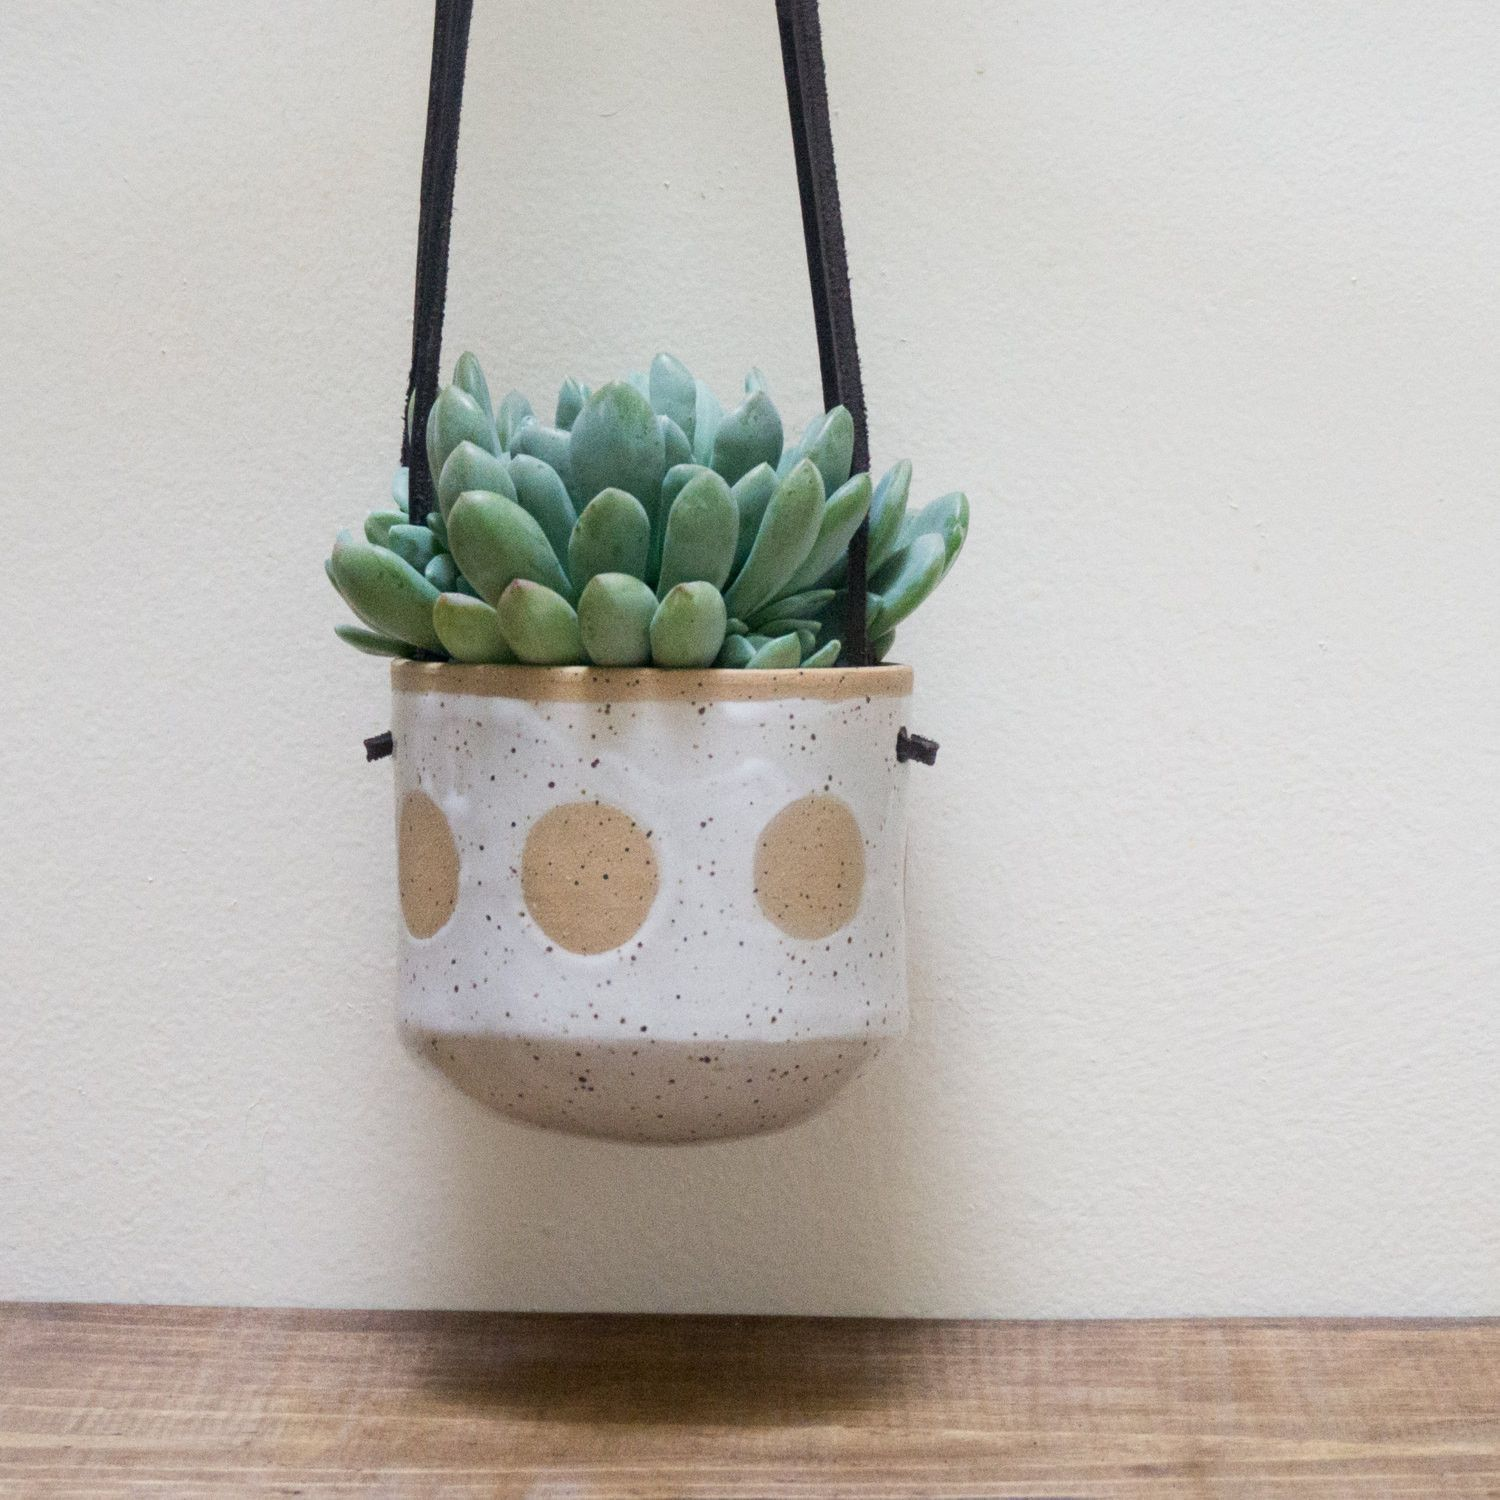 Handmade Ceramic Hanging Wall Planter For Succulents